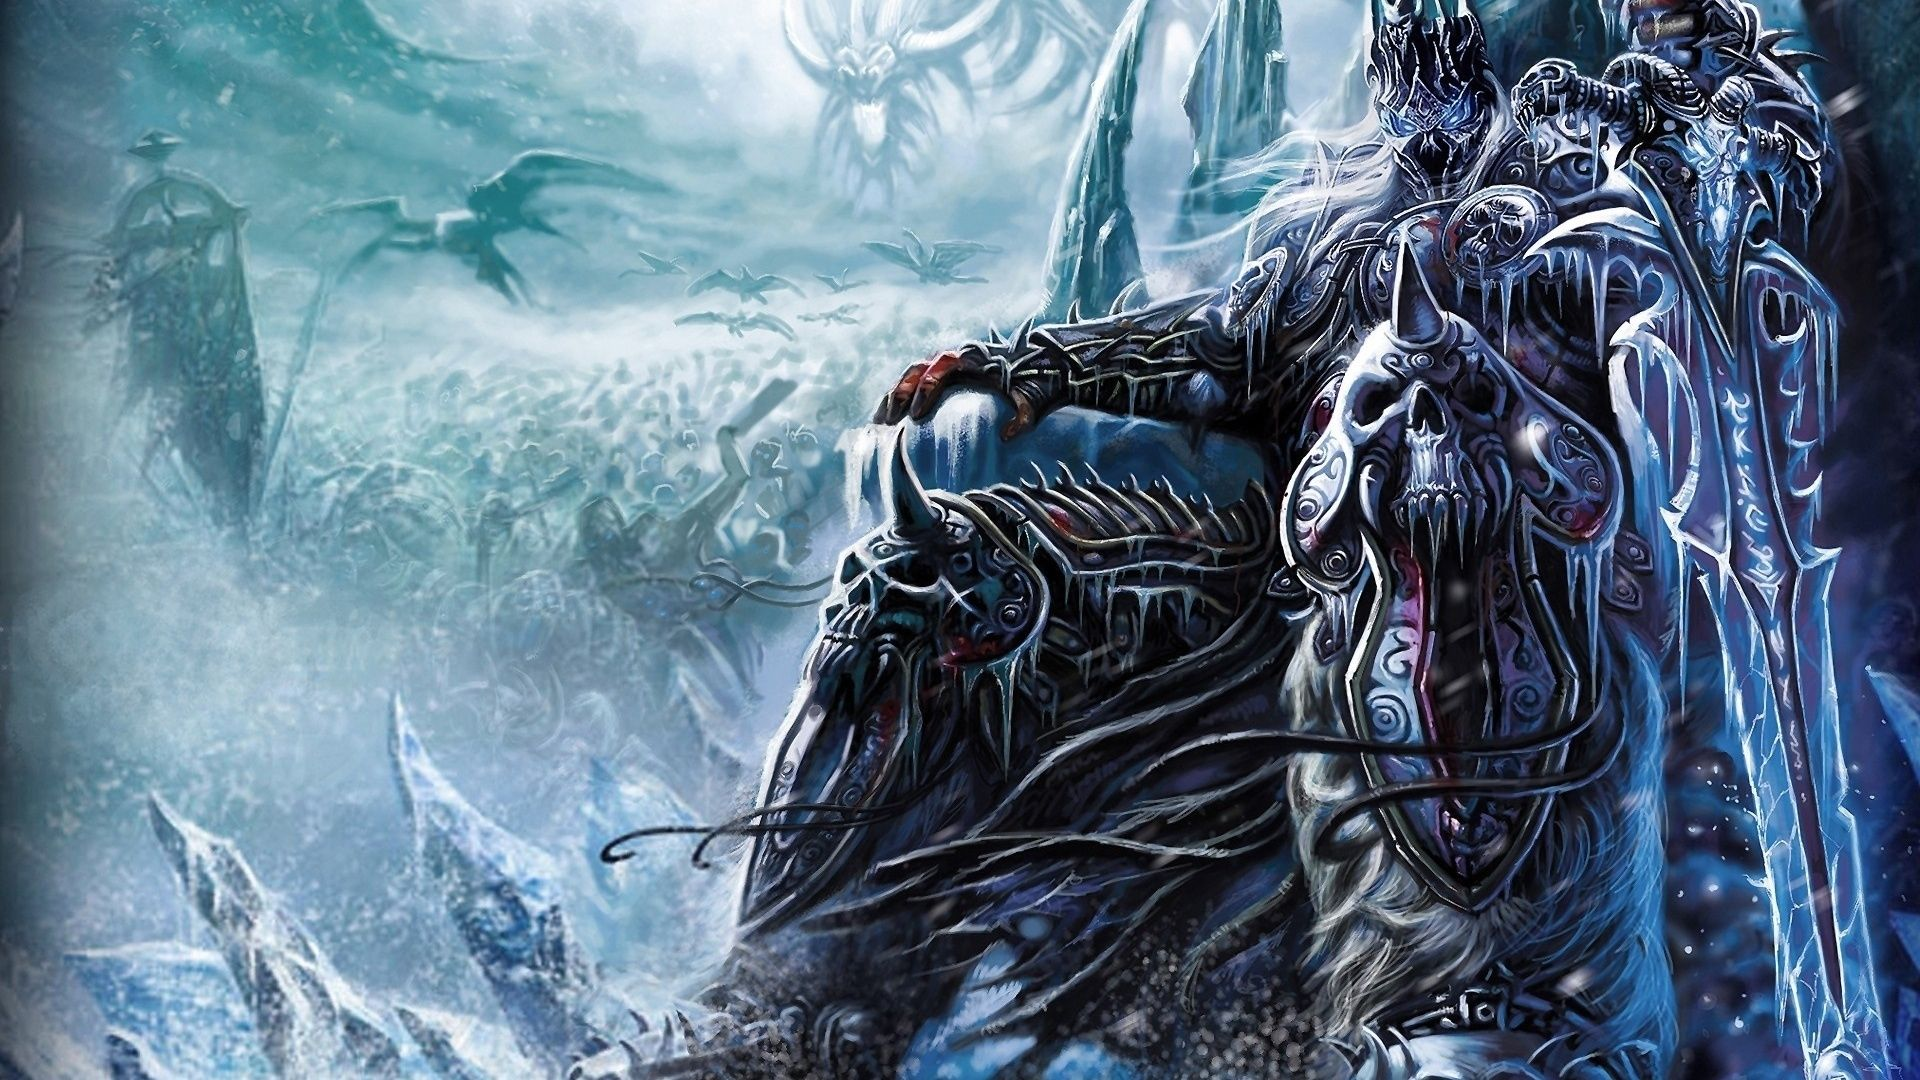 World Of Warcraft Wallpaper Wallpape Hd Game xpx Concept